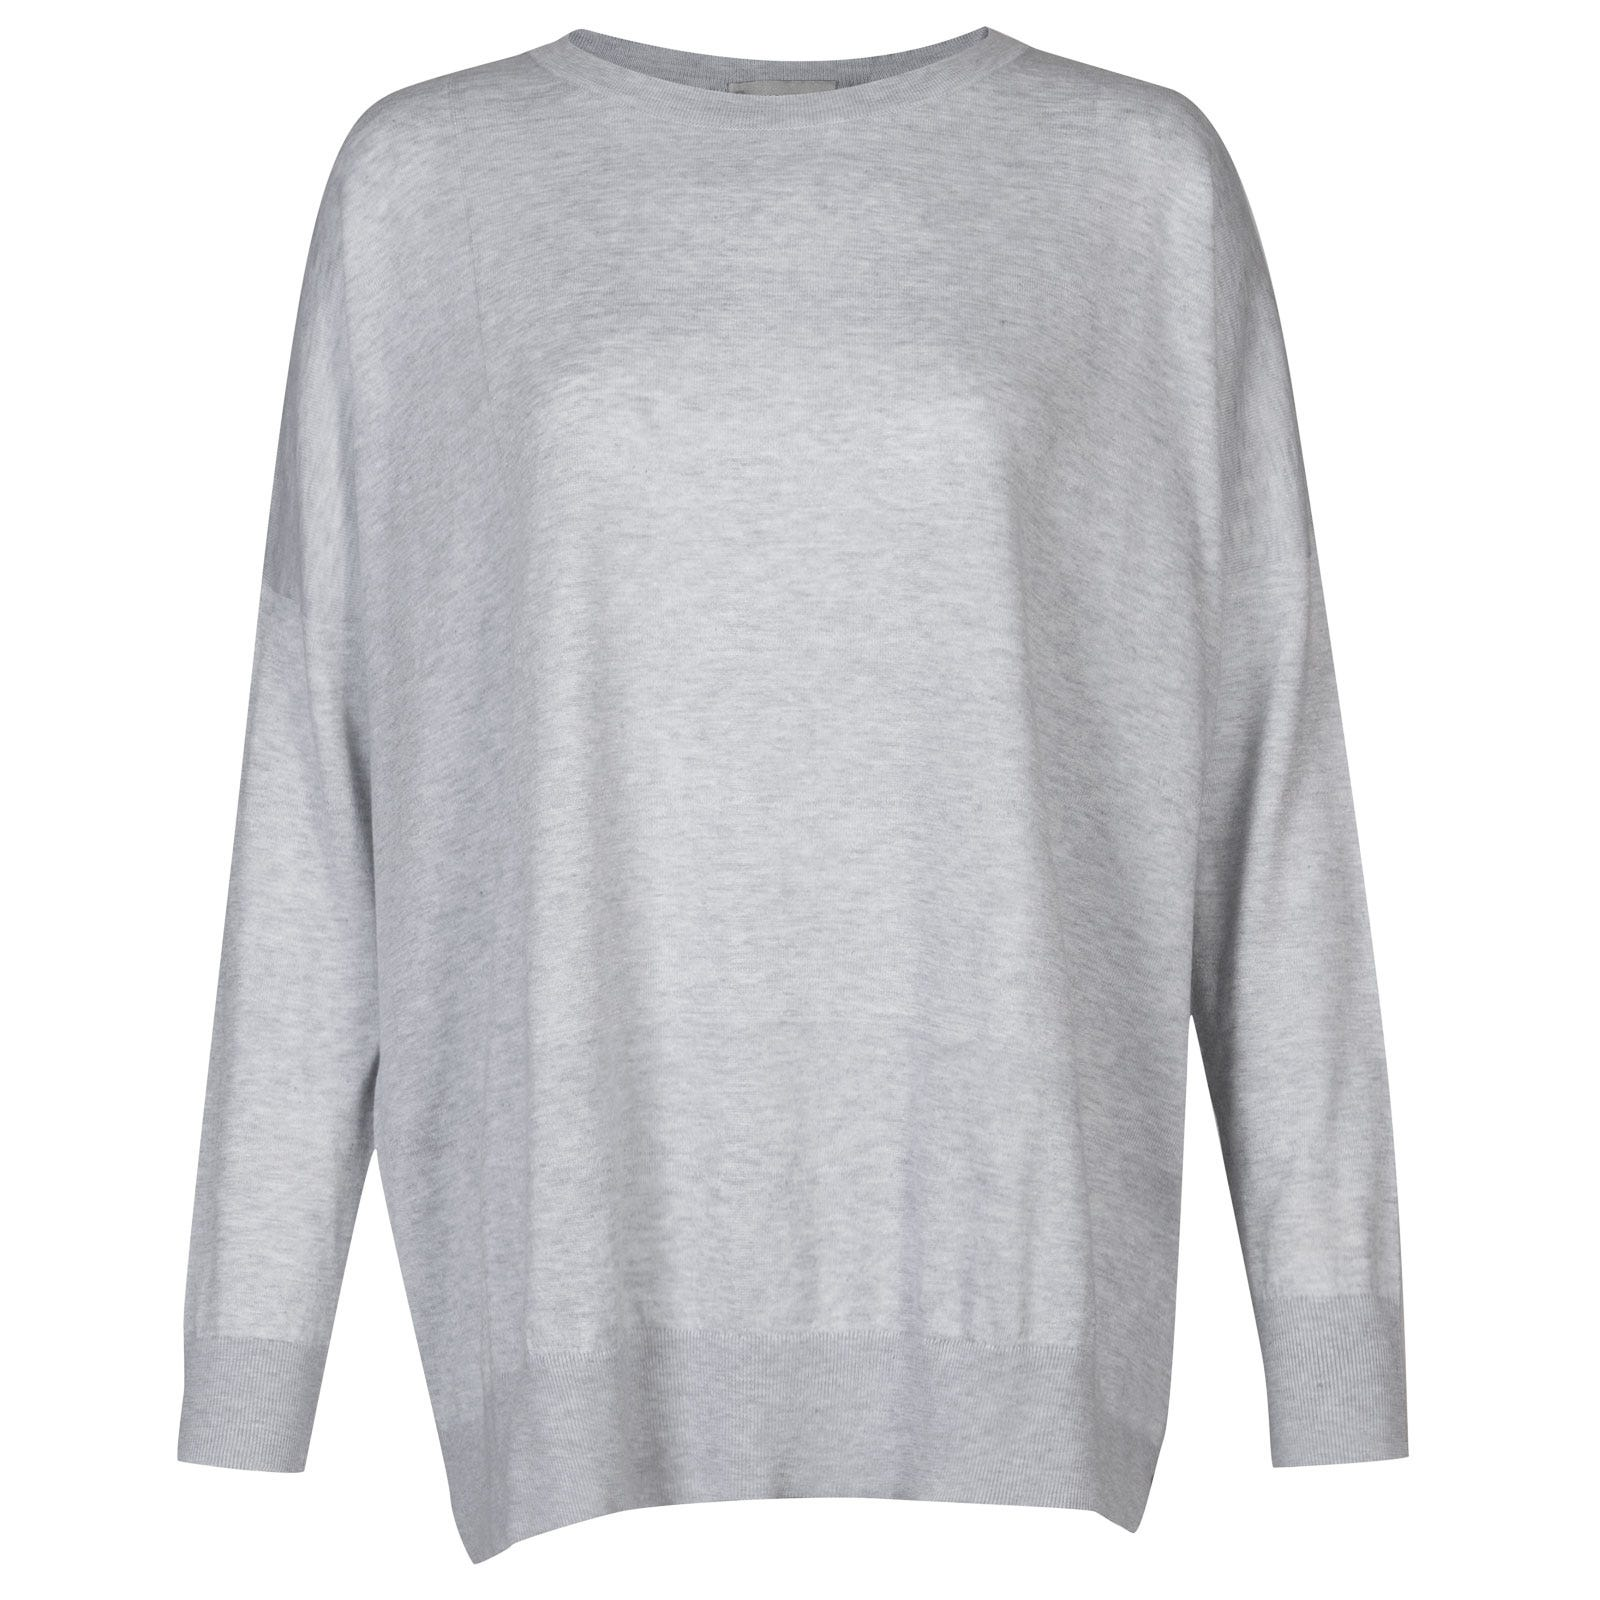 John Smedley Coper in Feather Grey-S